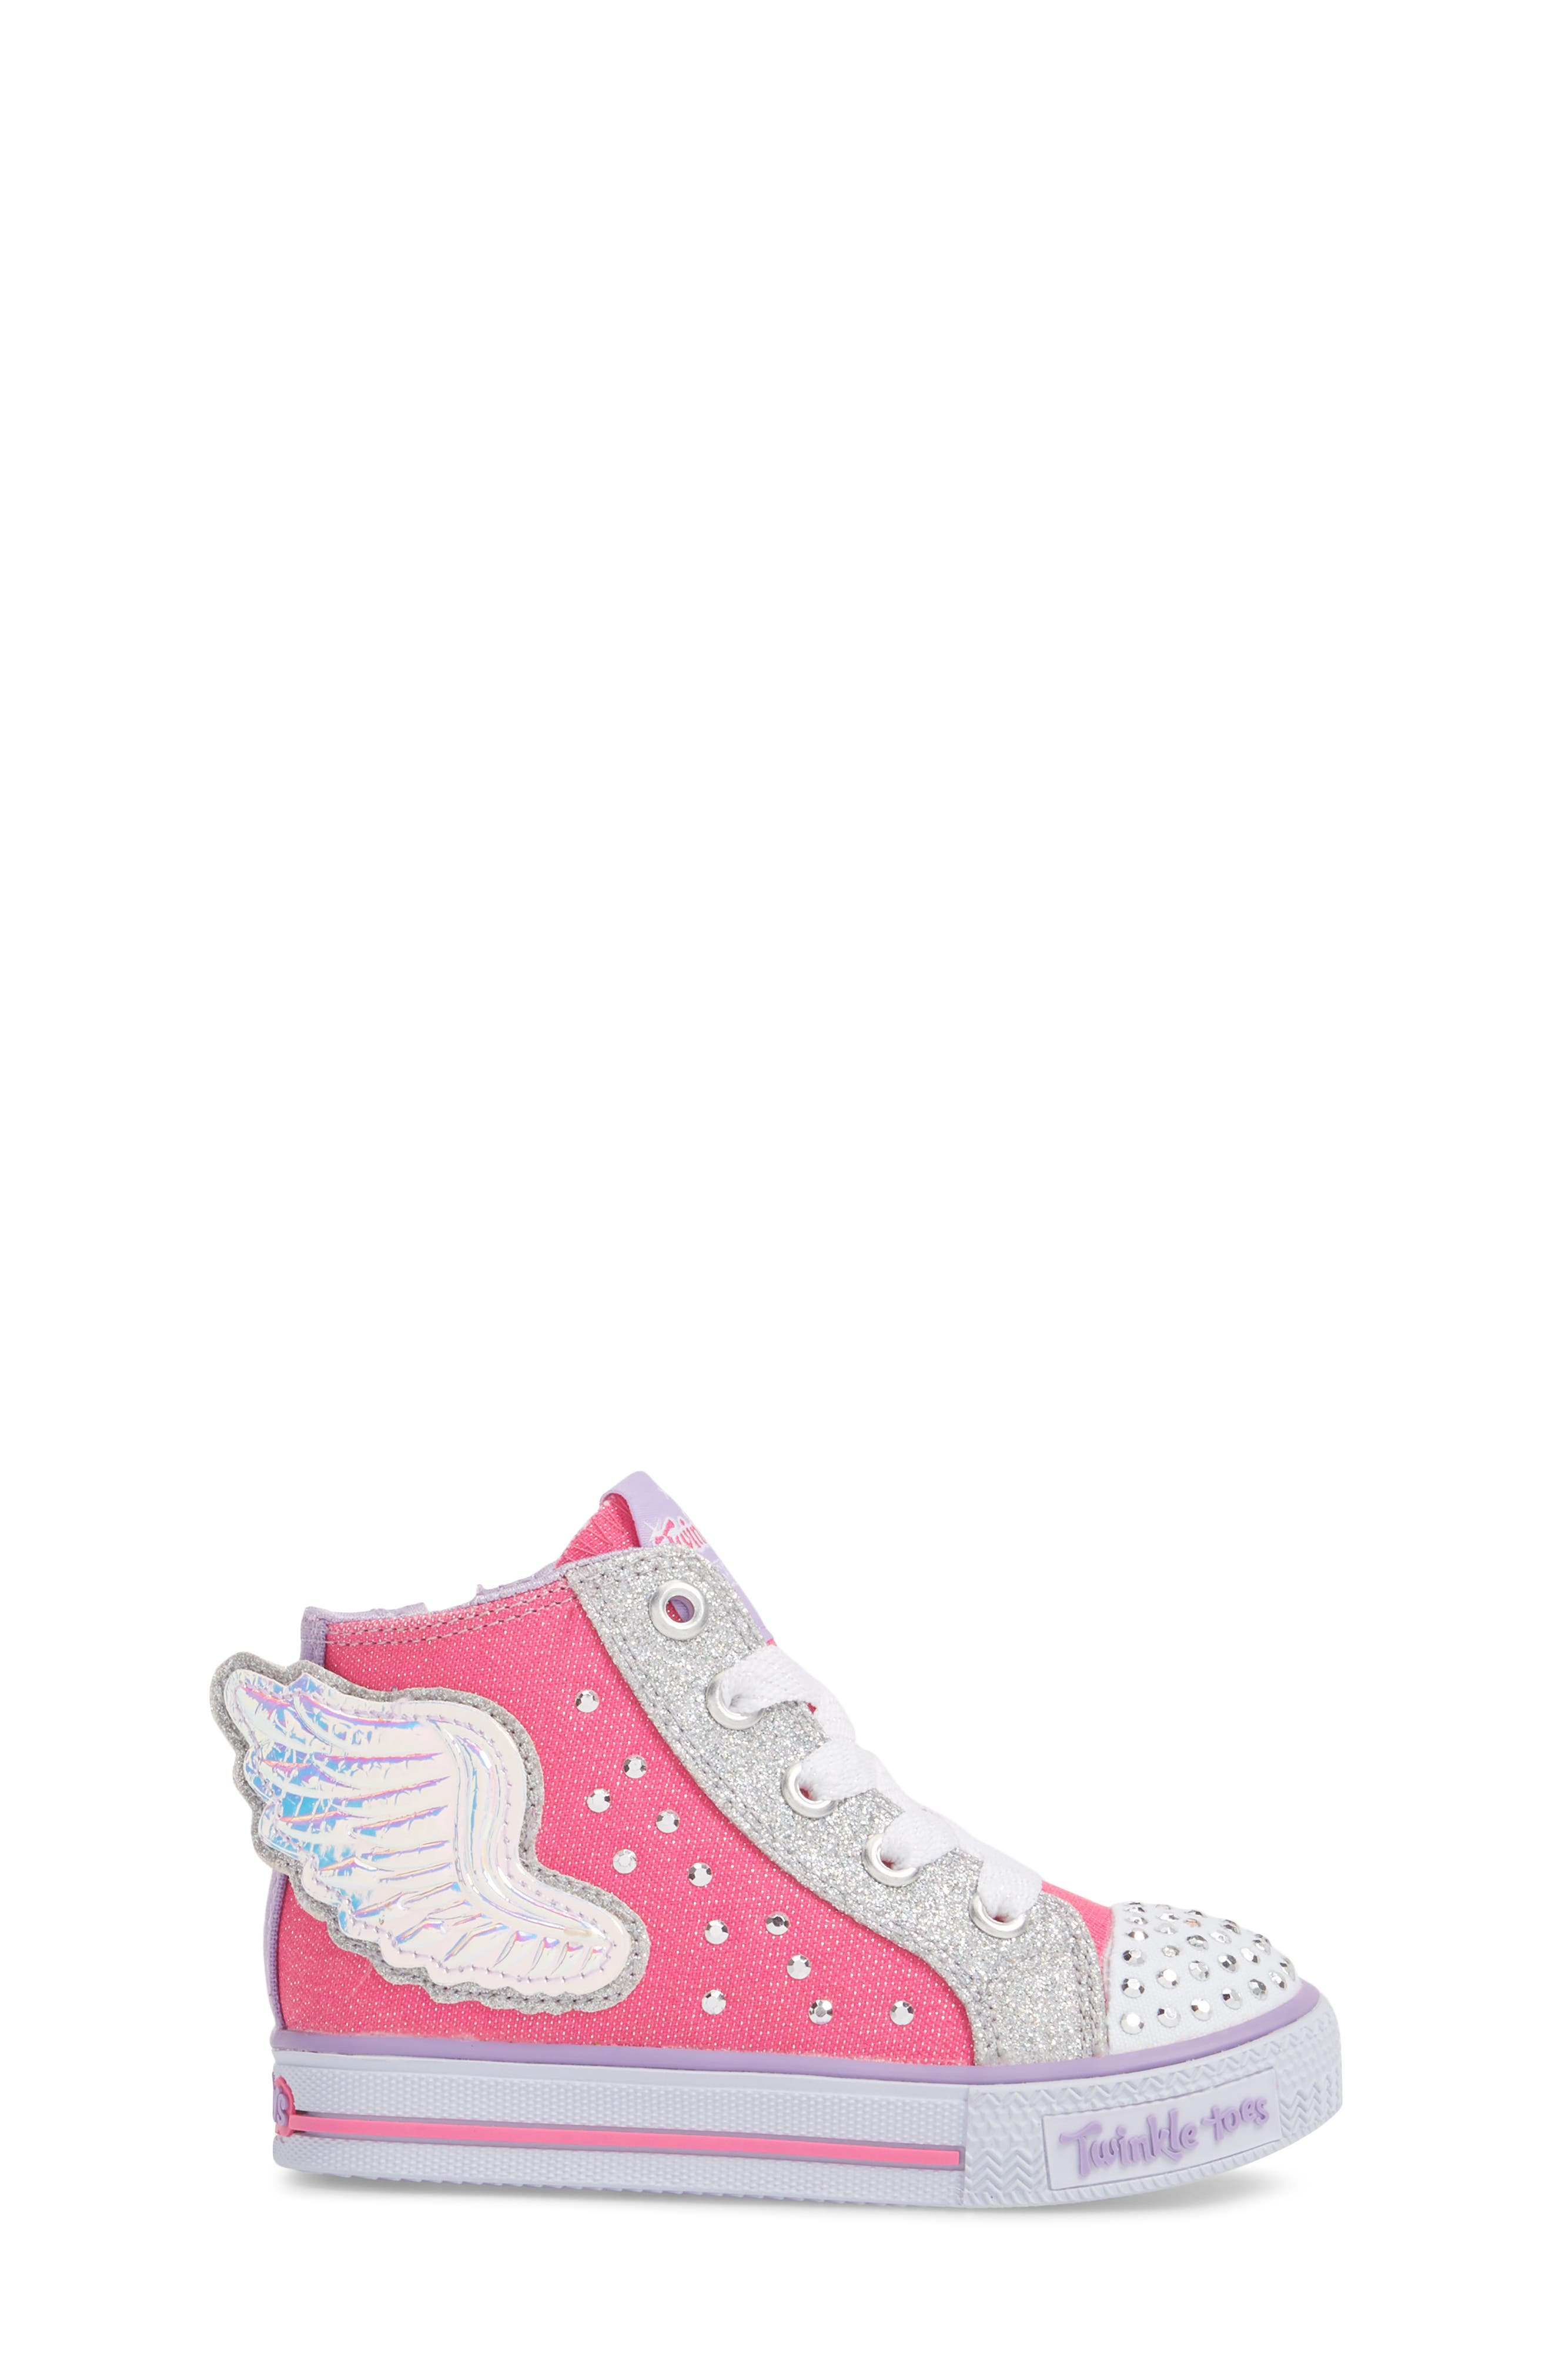 Twinkle Toes Shuffles Fooling Flutters Light-Up High Top Sneaker,                             Alternate thumbnail 3, color,                             Hot Pink/ Silver